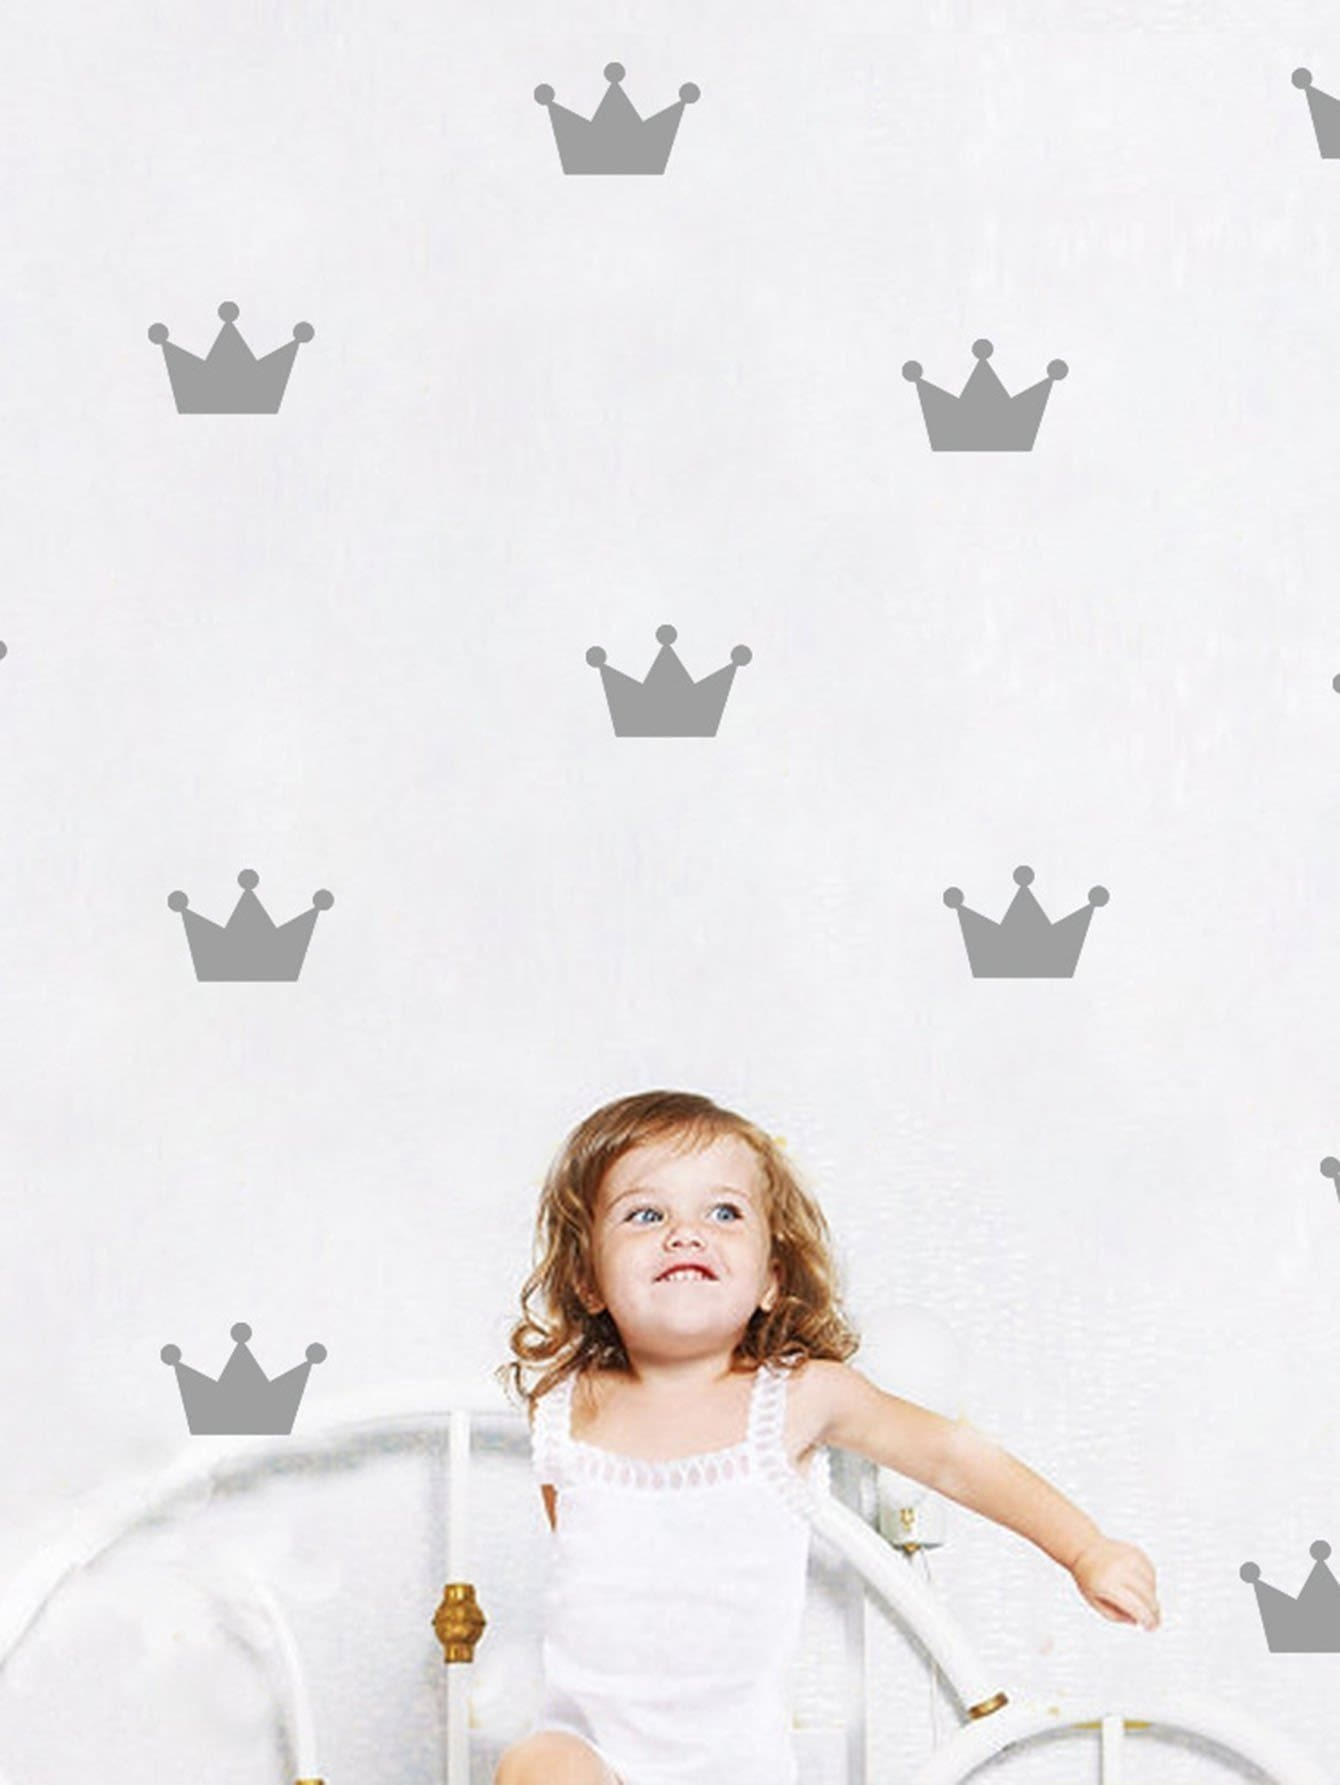 Crown Wall Sticker Pack 45 pcs pack animal blue whale fish mini paper sticker diary decoration diy scrapbooking label seal sticker stationery